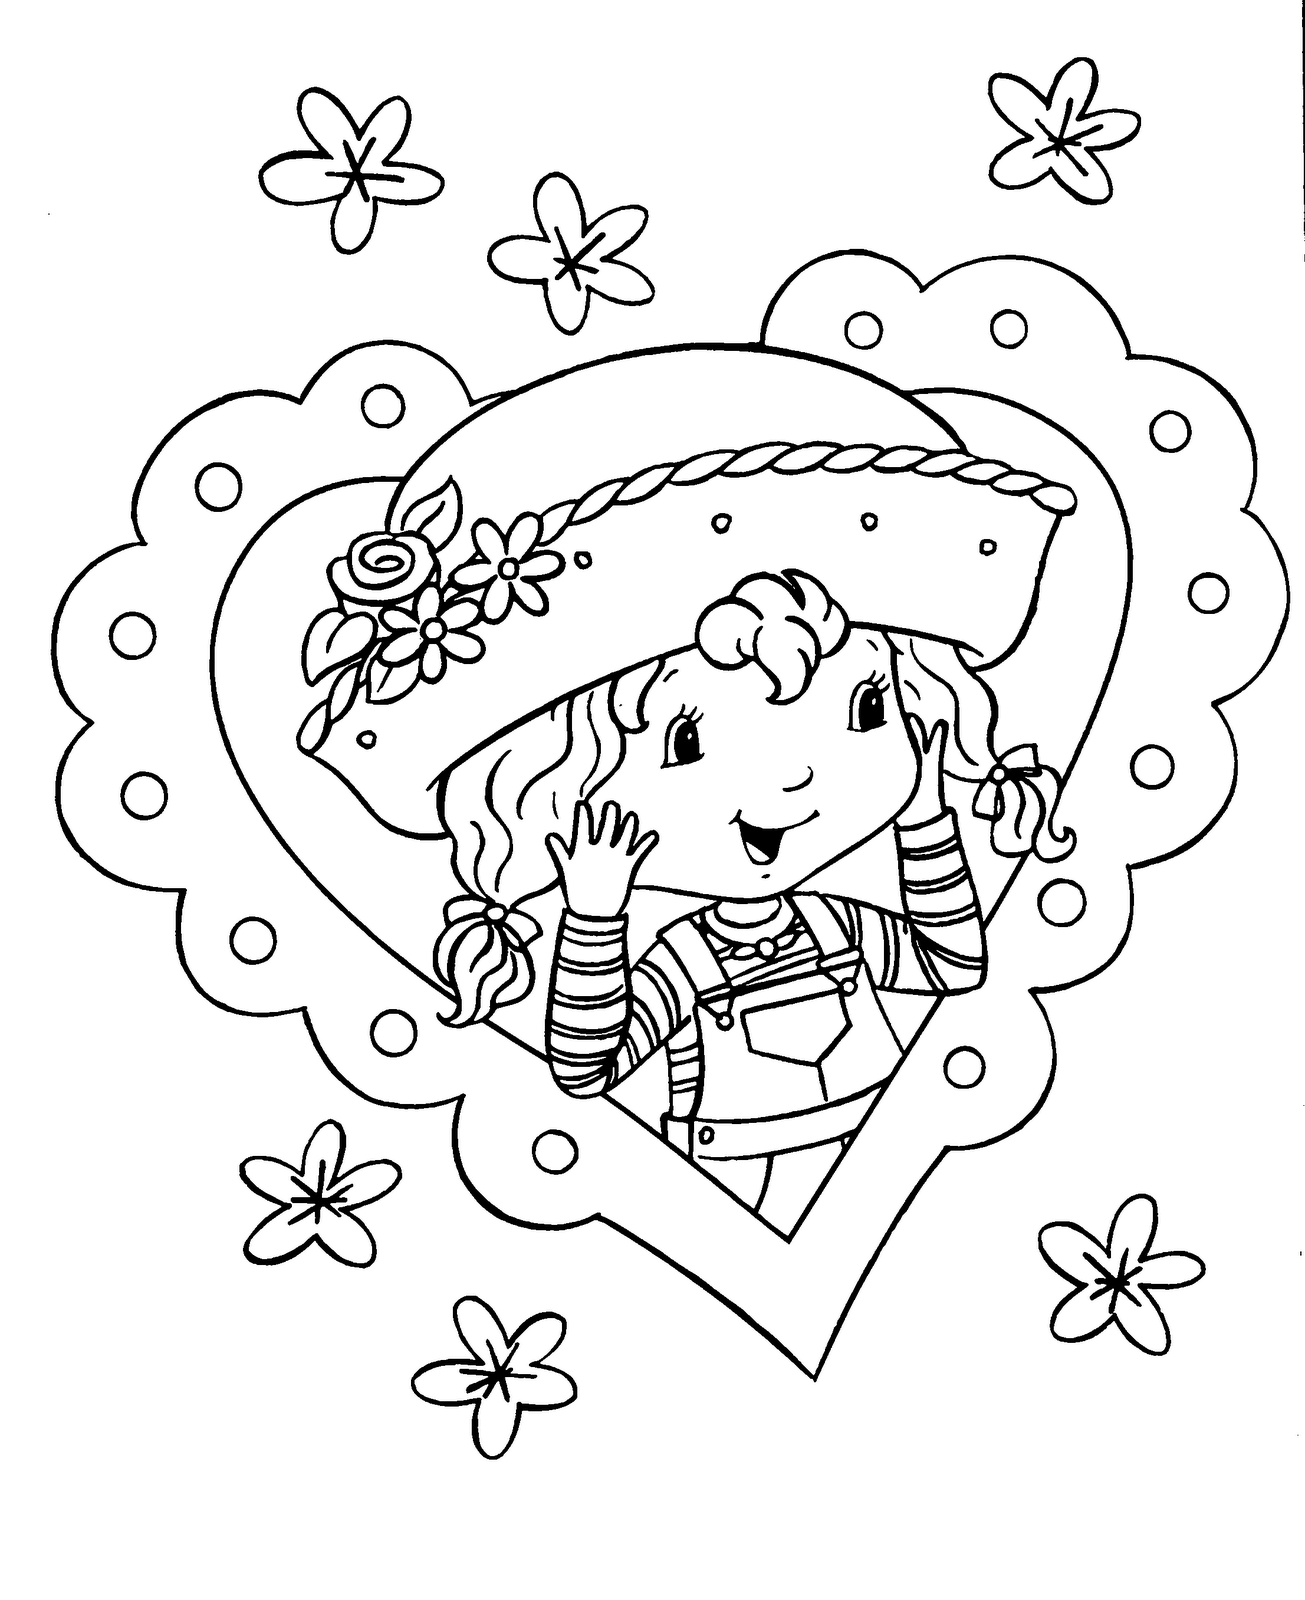 strawberry shortcake printable coloring pages strawberry shortcake coloring pages learn to coloring coloring strawberry pages printable shortcake